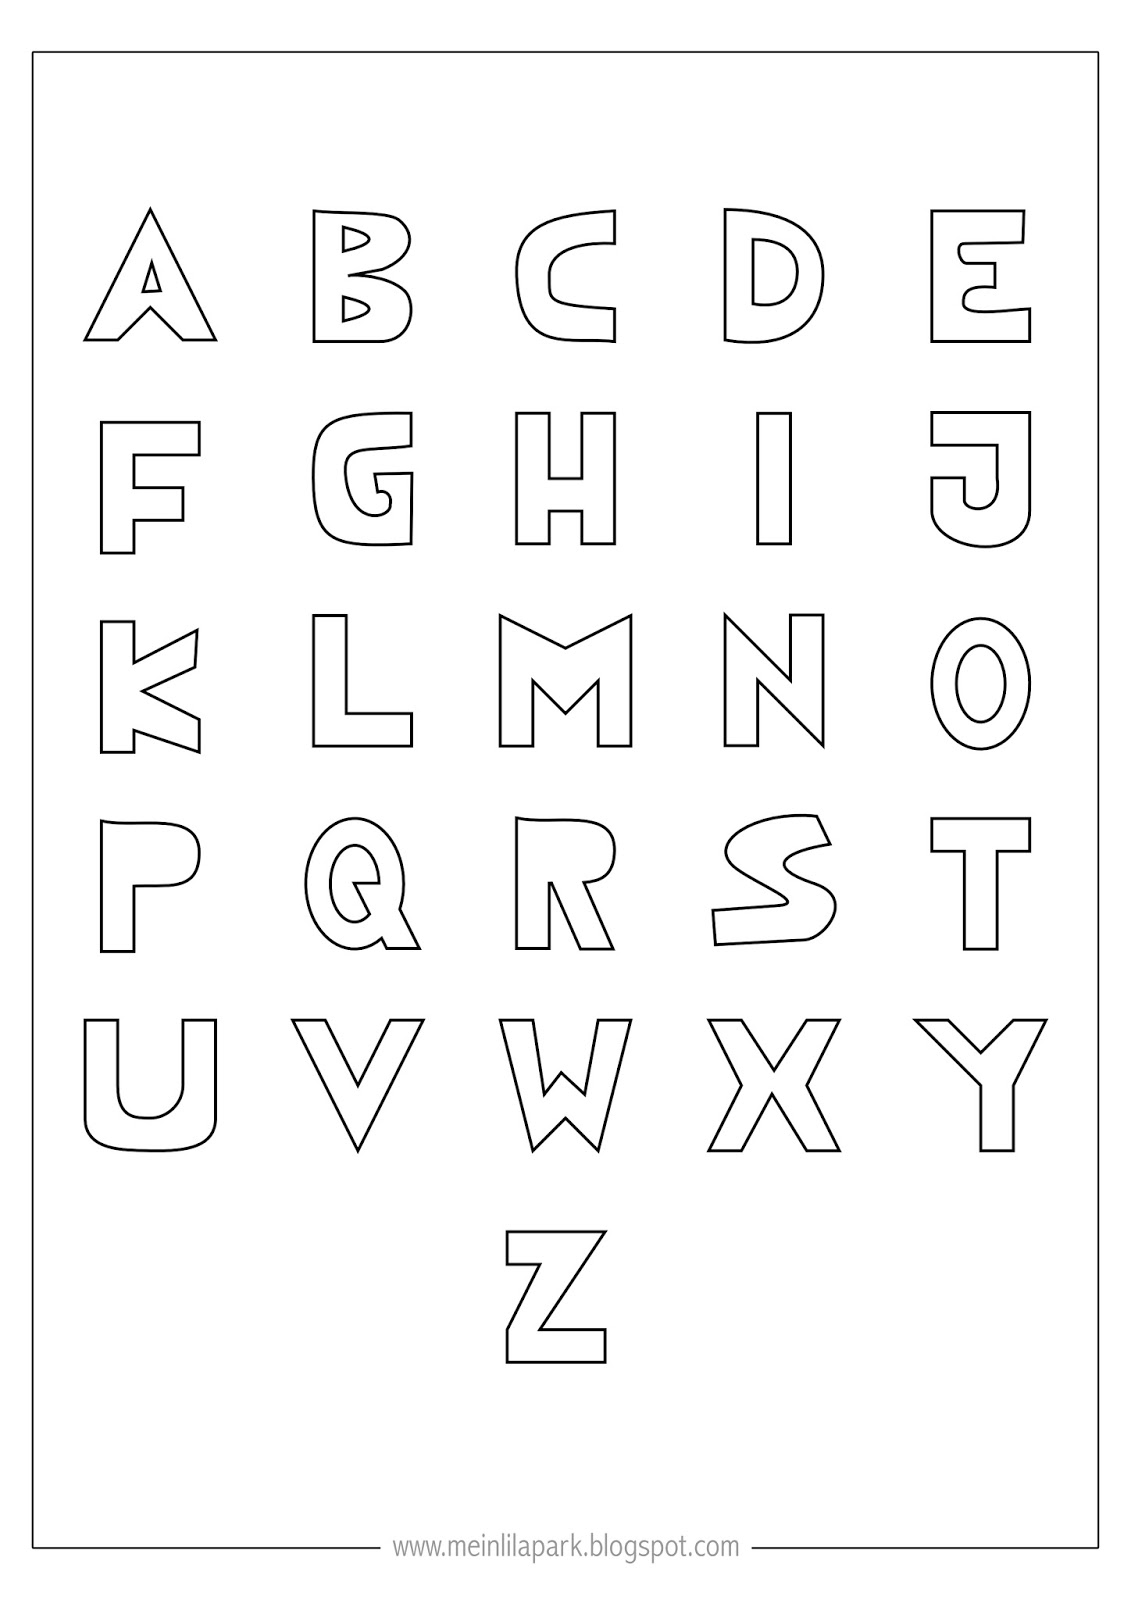 abc letters to color free printable alphabet coloring pages for kids best letters abc to color 1 1